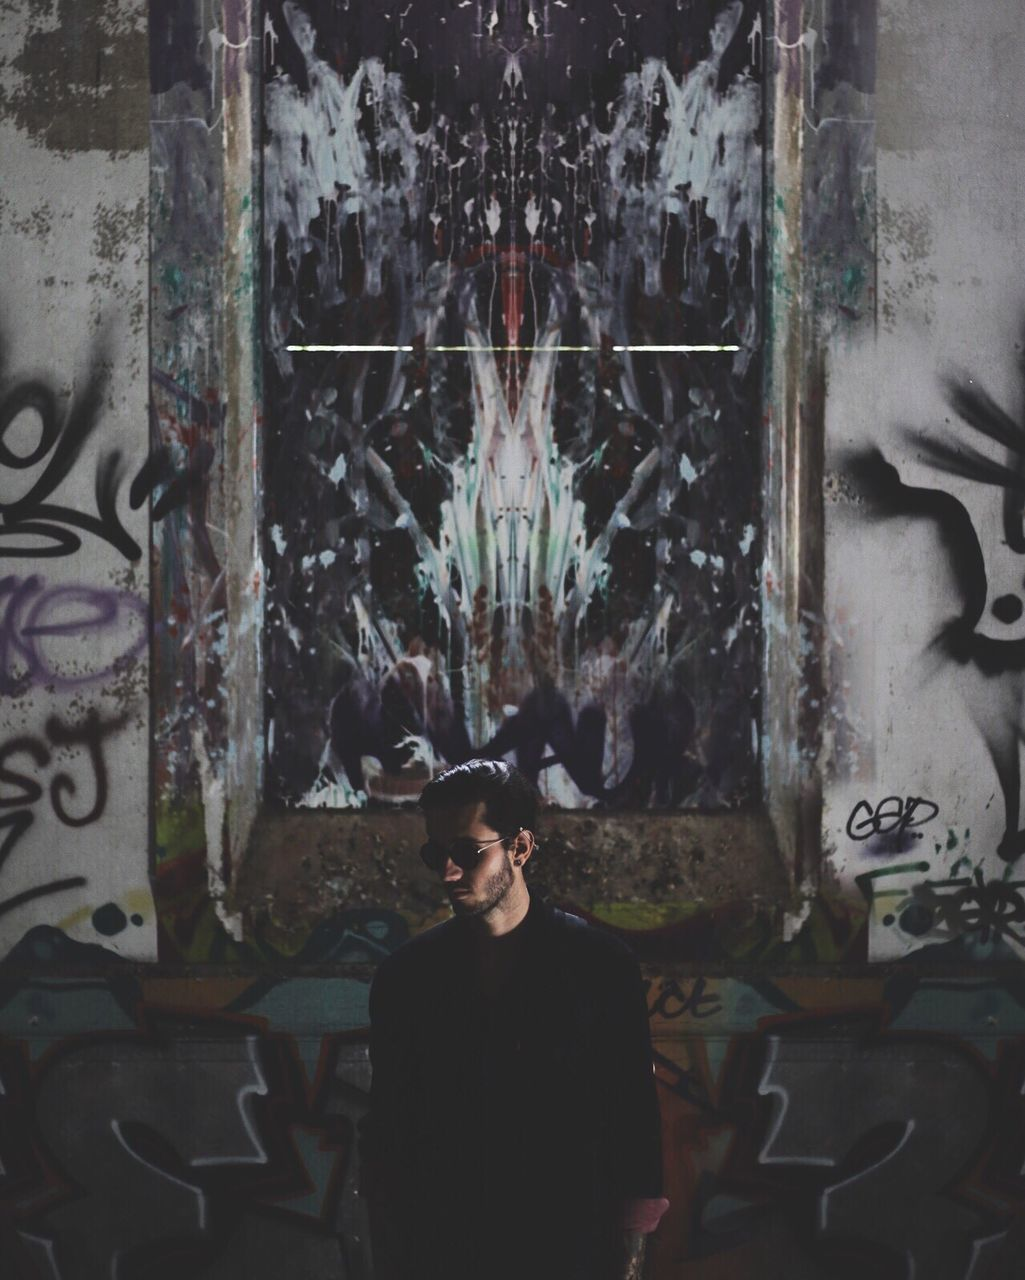 Young Man Standing Against Graffiti On Wall